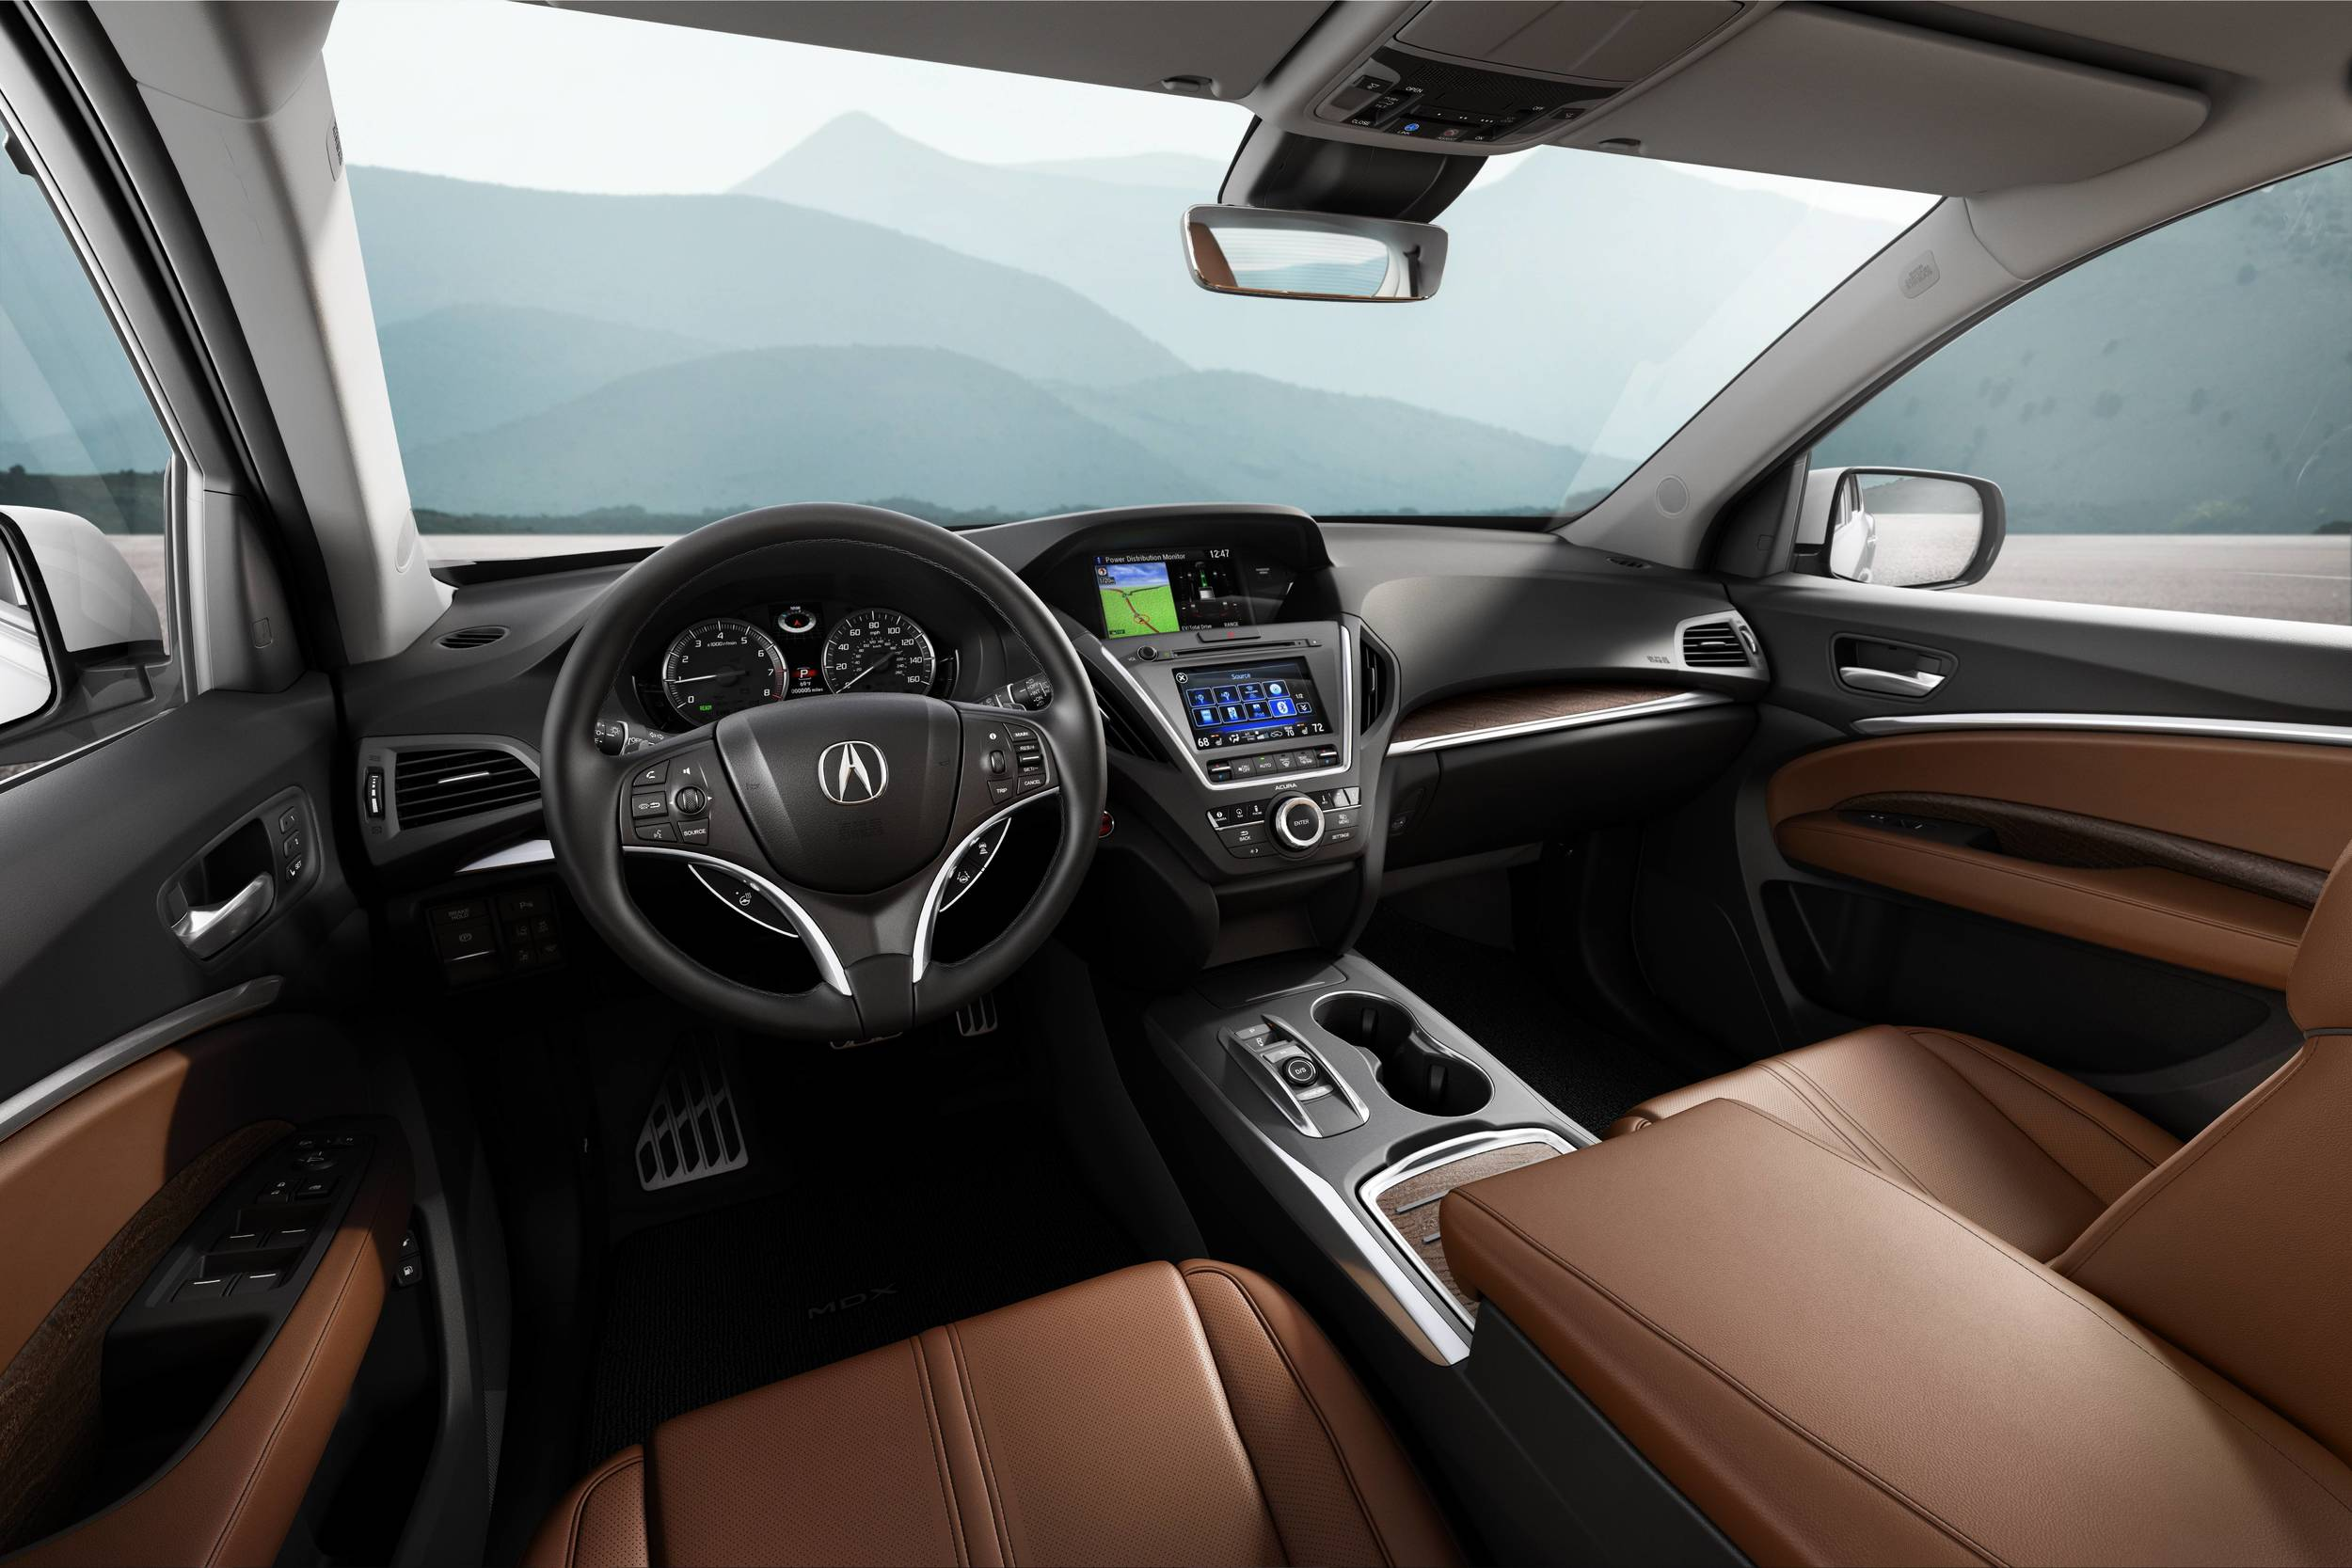 news utility luxury release one as to nca selected canadian performance suv january markham vehicle acura three has for en top of mdx fpo accelerates canada the finalists newsdetails been year on